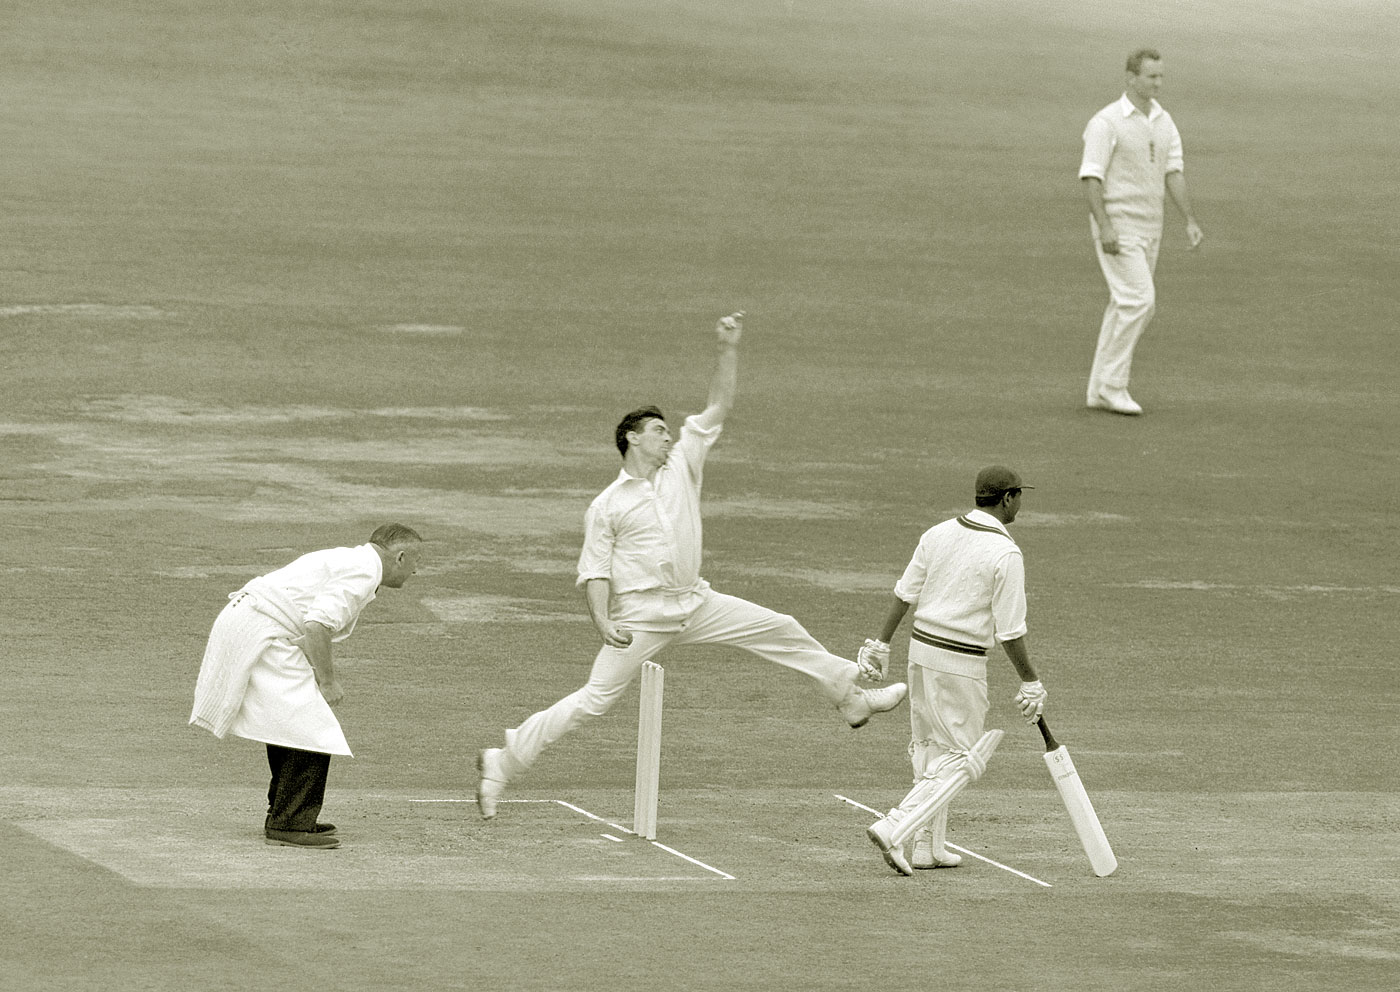 Hold the pose: Trueman at Lord's against West Indies in 1963, a match in which he took 11 wickets